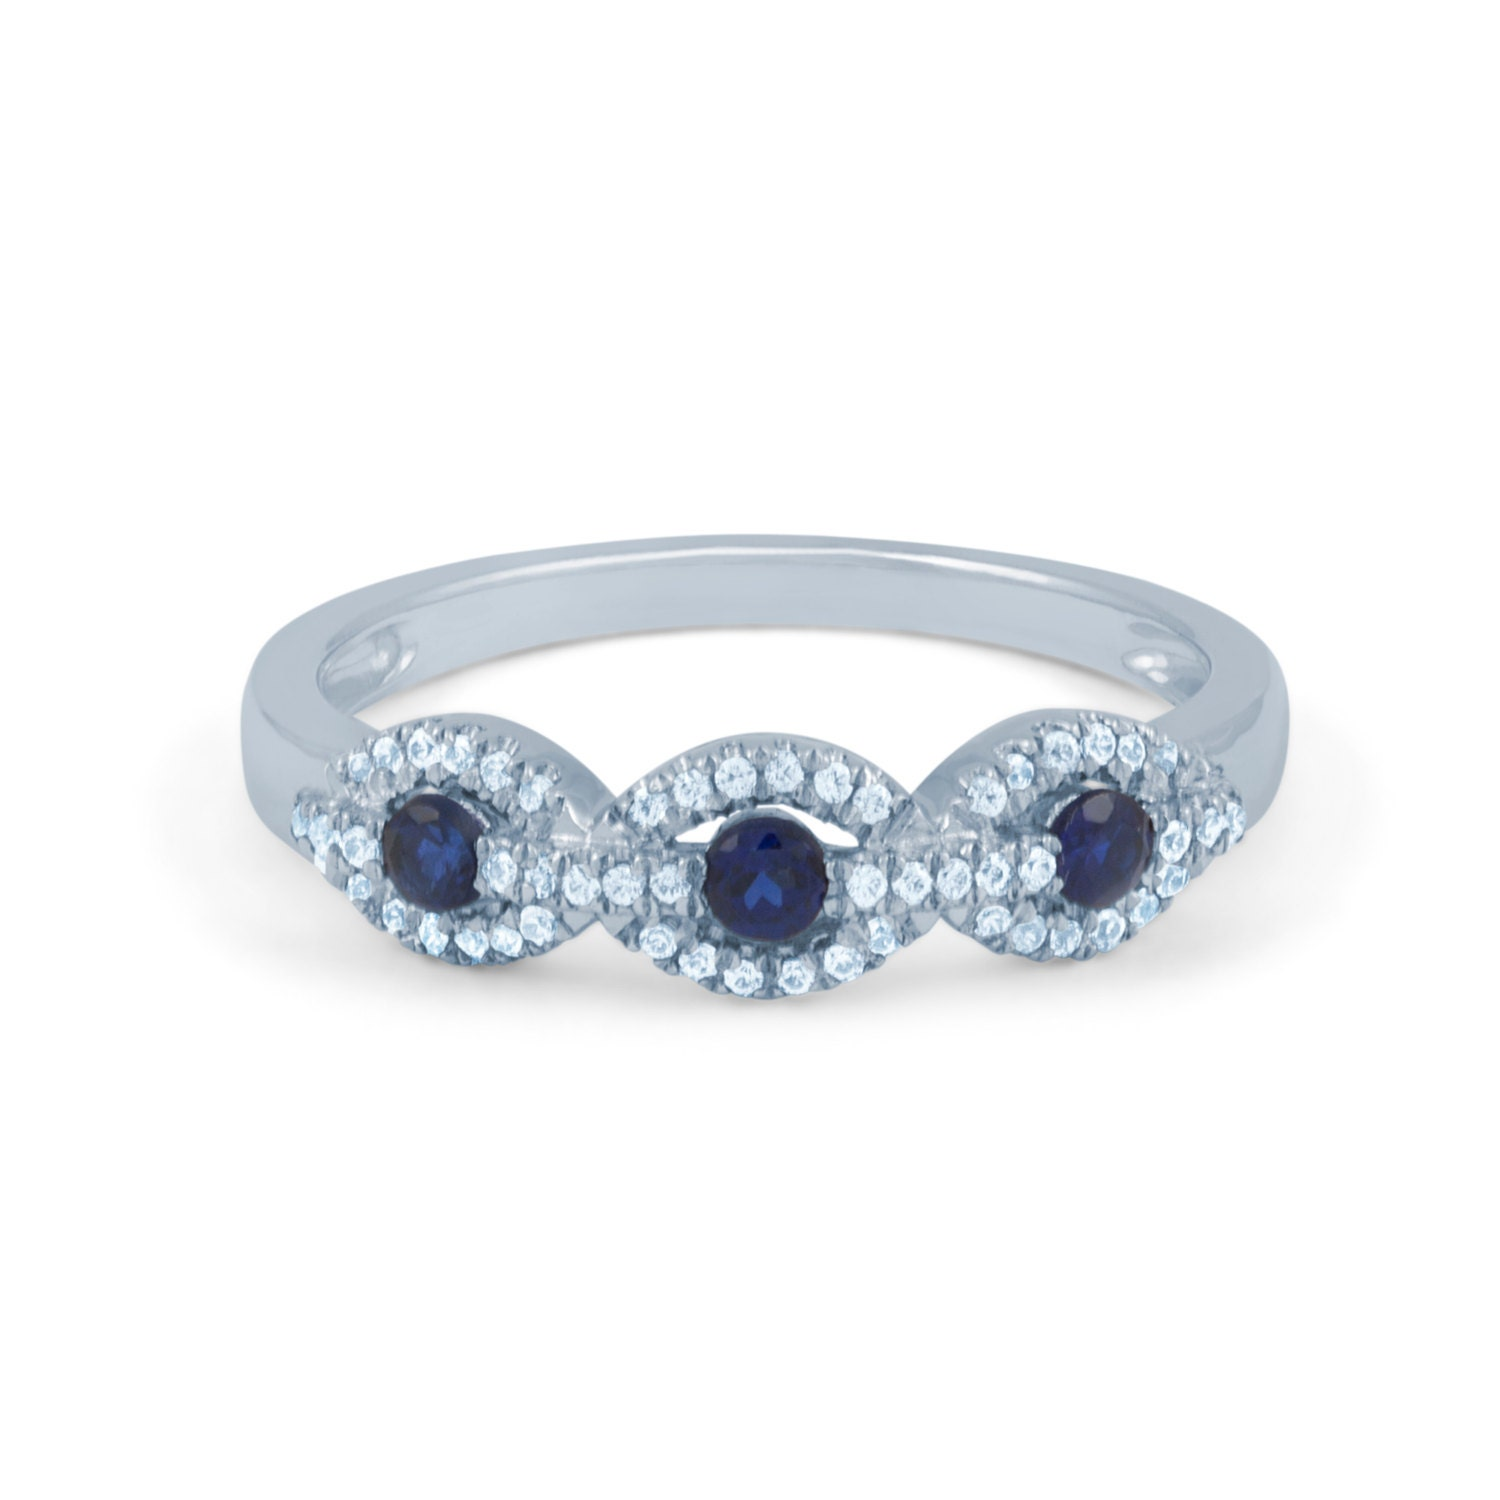 Natural Blue Sapphire Cluster Diamond Wedding Anniversary Ring 18k White or 18k Yellow Gold US Size 4 4.5 5 5.5 6 6.5 7 7.5 8 8.5